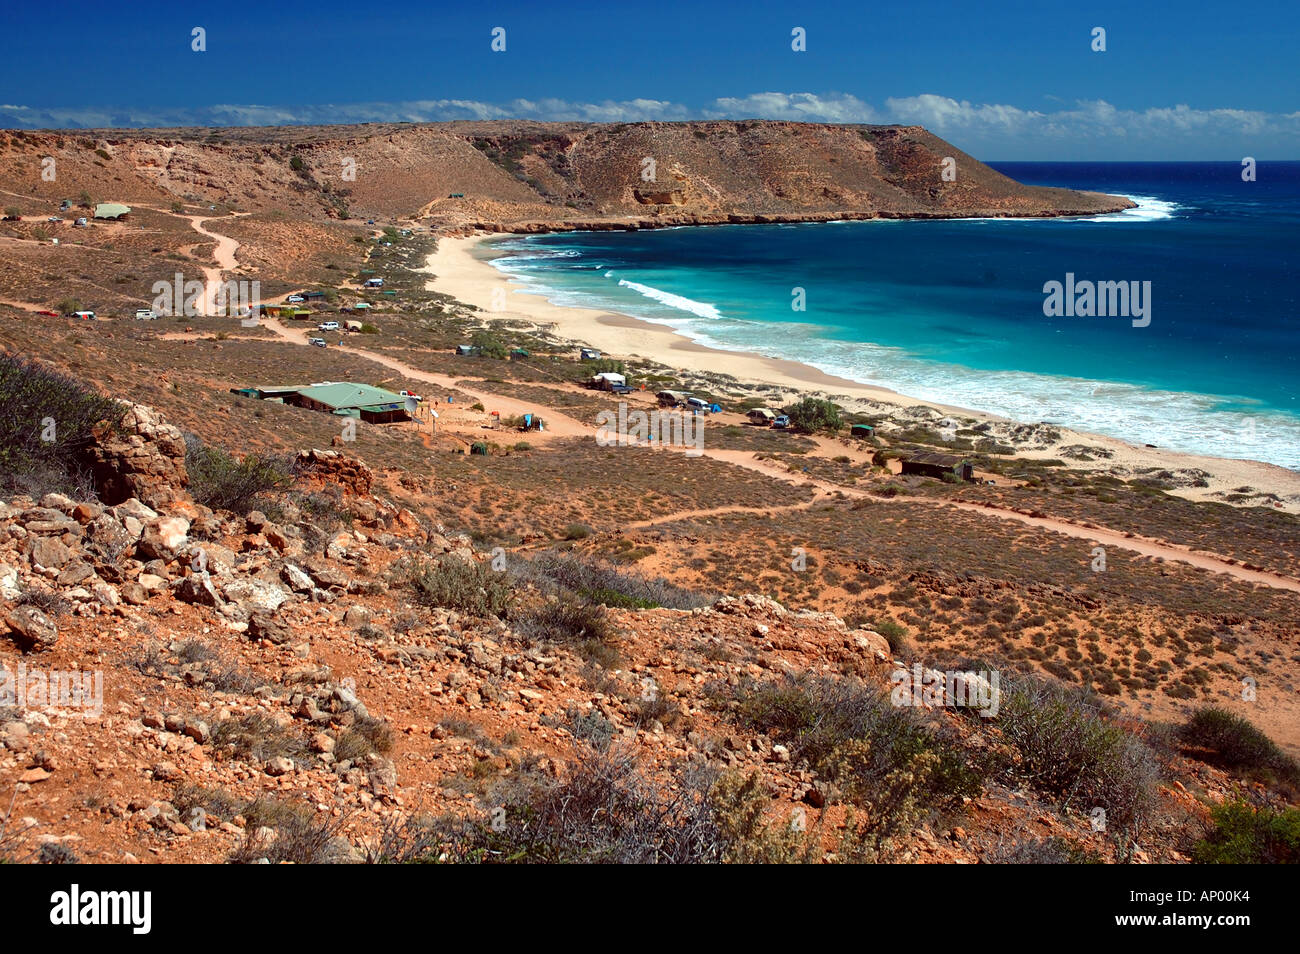 Red Bluff campsite Quobba Station southern boundary to Ningaloo Reef Marine Park Western Australia - Stock Image